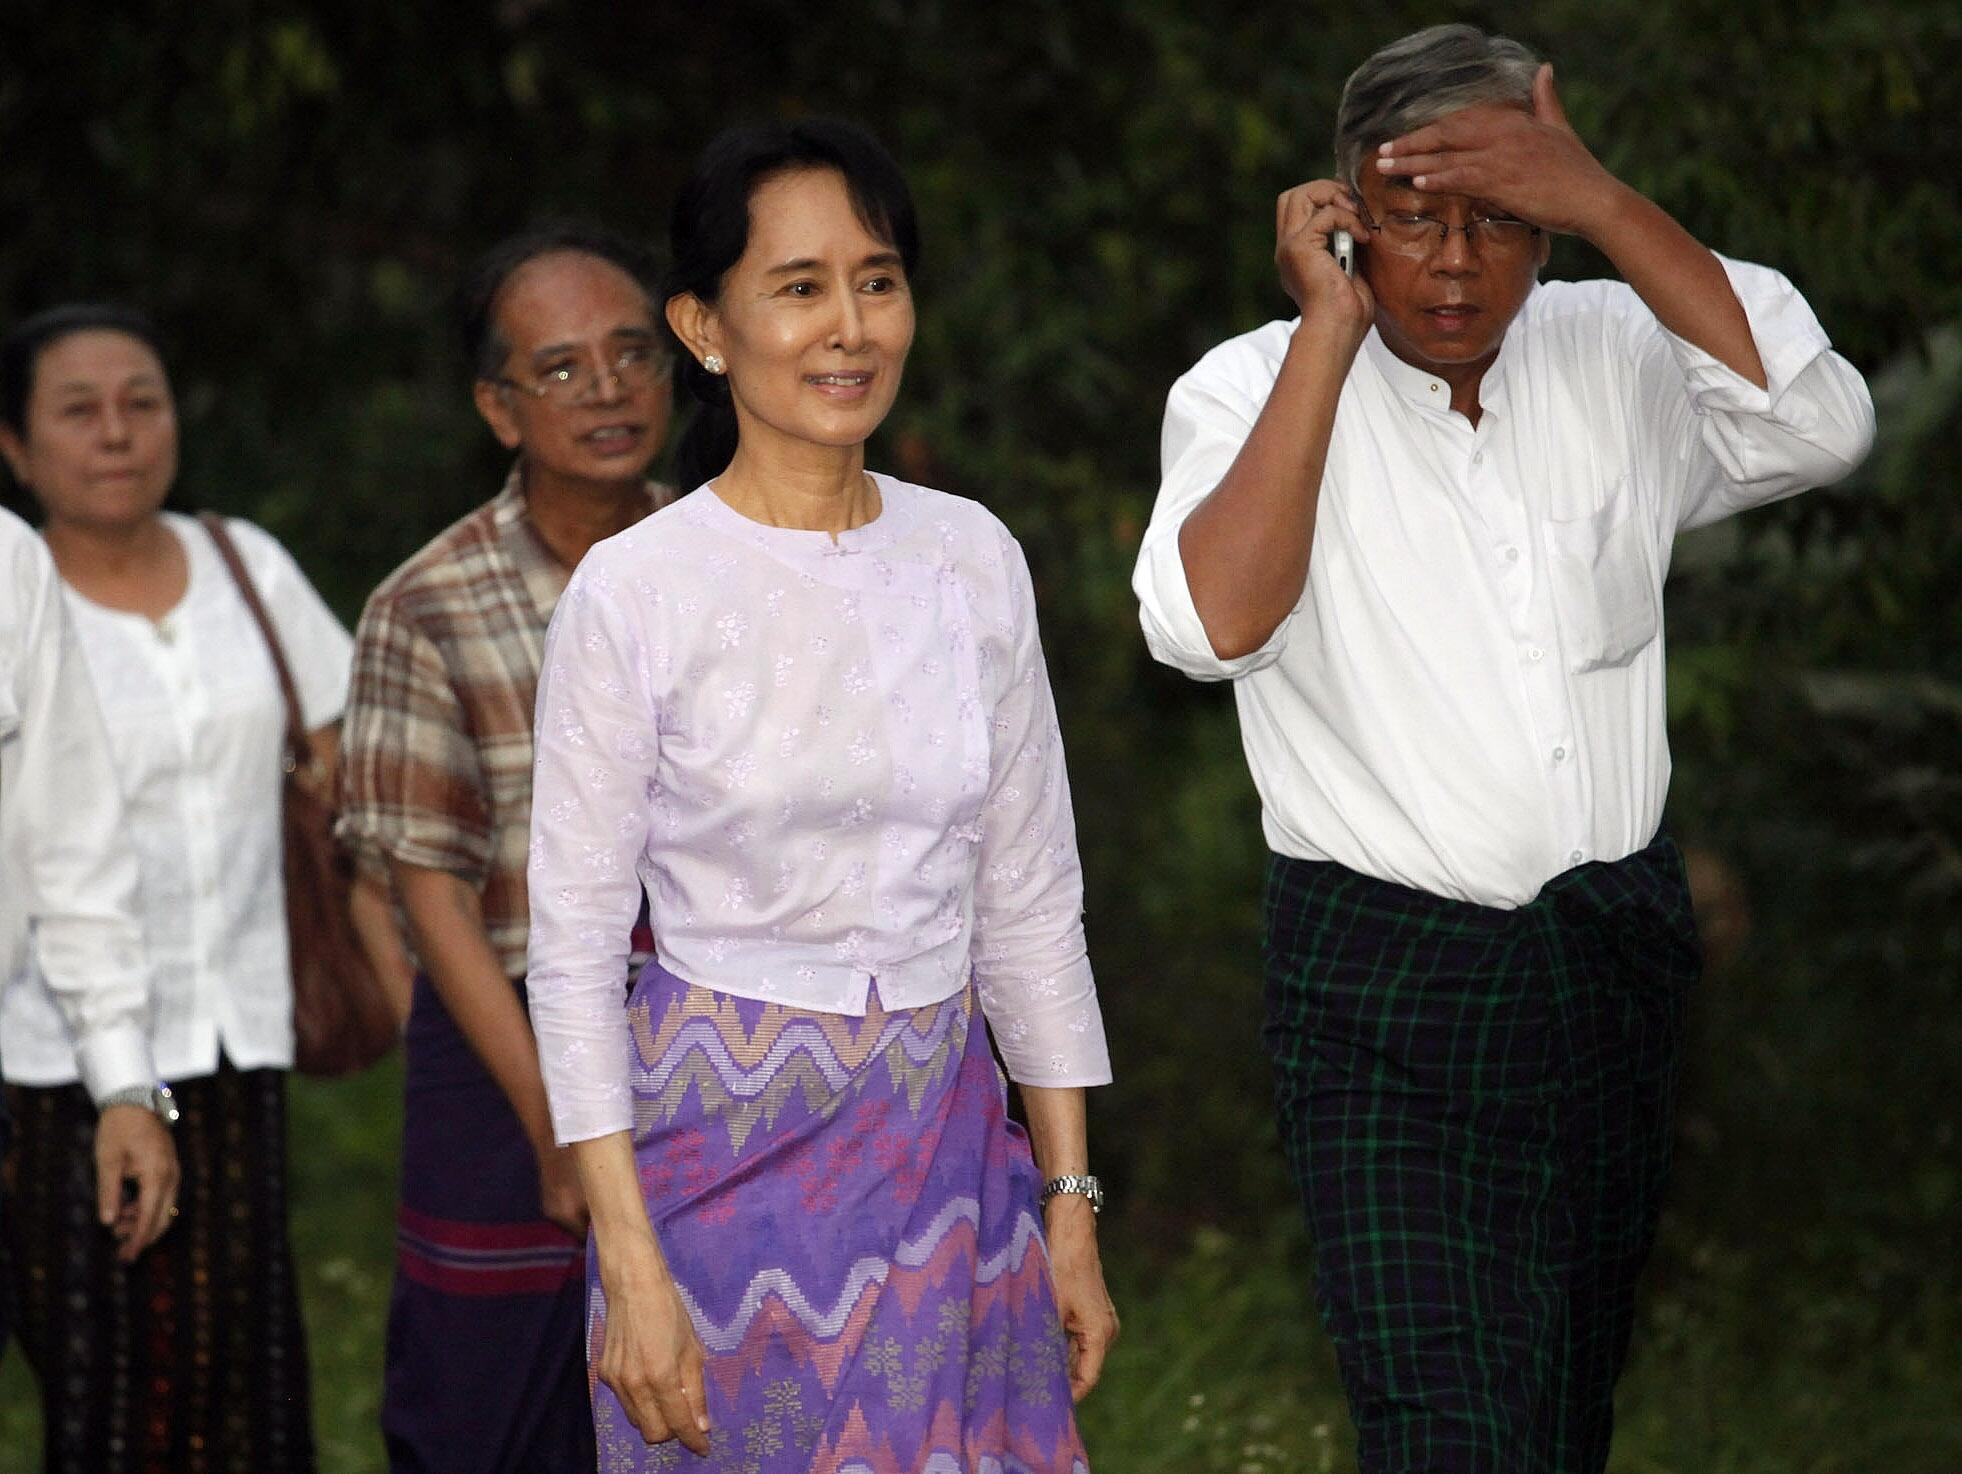 Aung San Suu Kyi leaves her house with members of her National League for Democracy